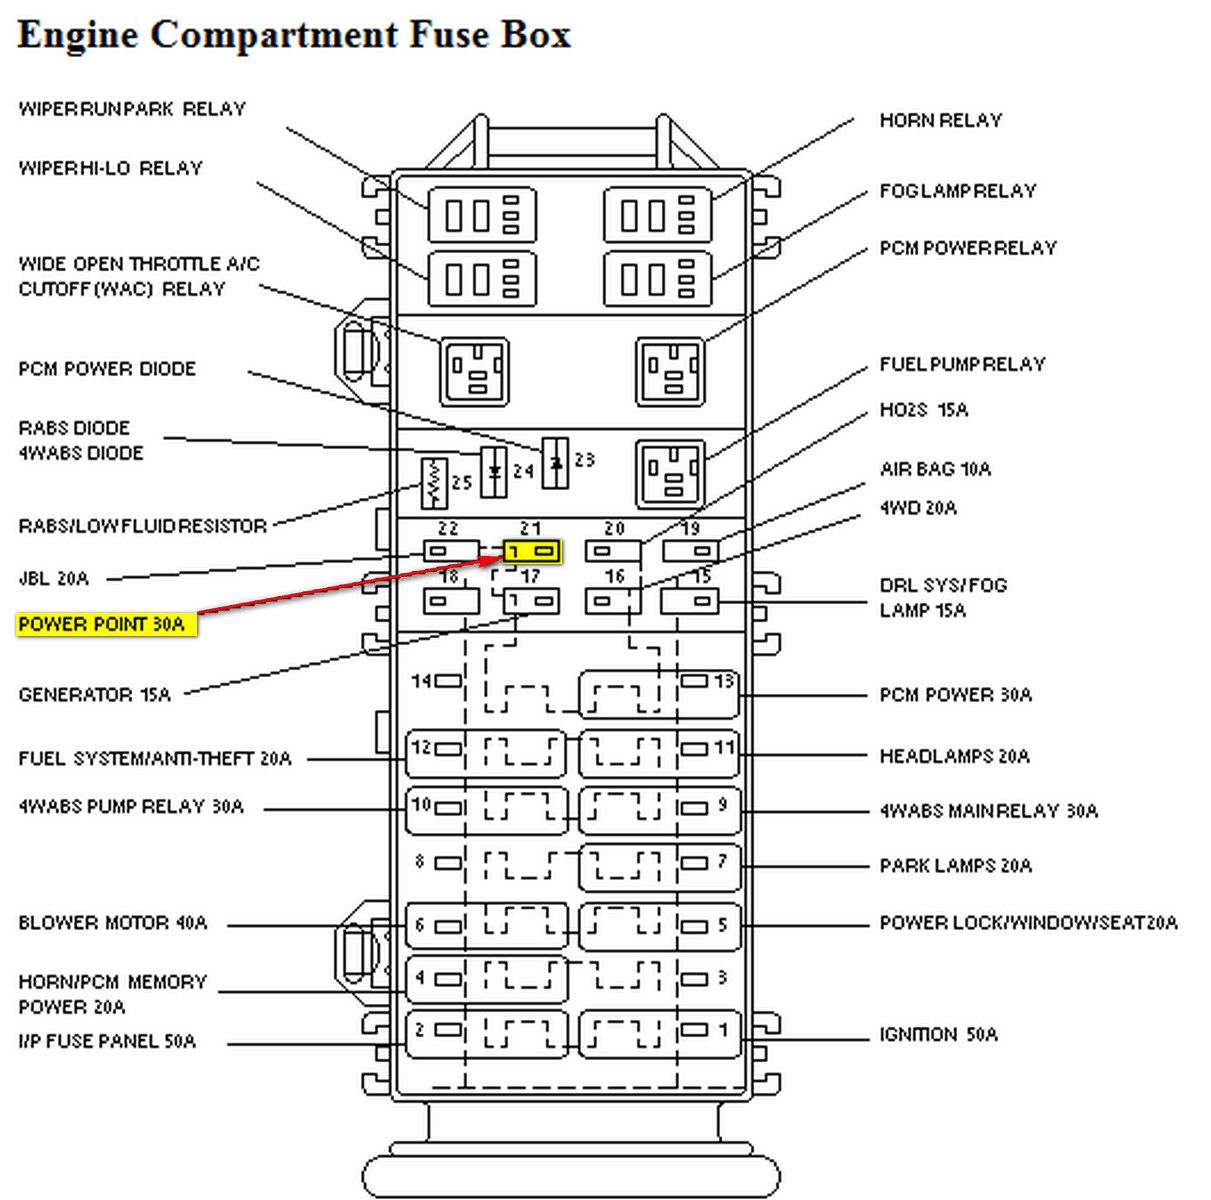 1995 Ford Explorer Xlt Fuse Box Diagram Obc2 To J1939 Wiring Diagram Valkyrie Ab12 Jeanjaures37 Fr